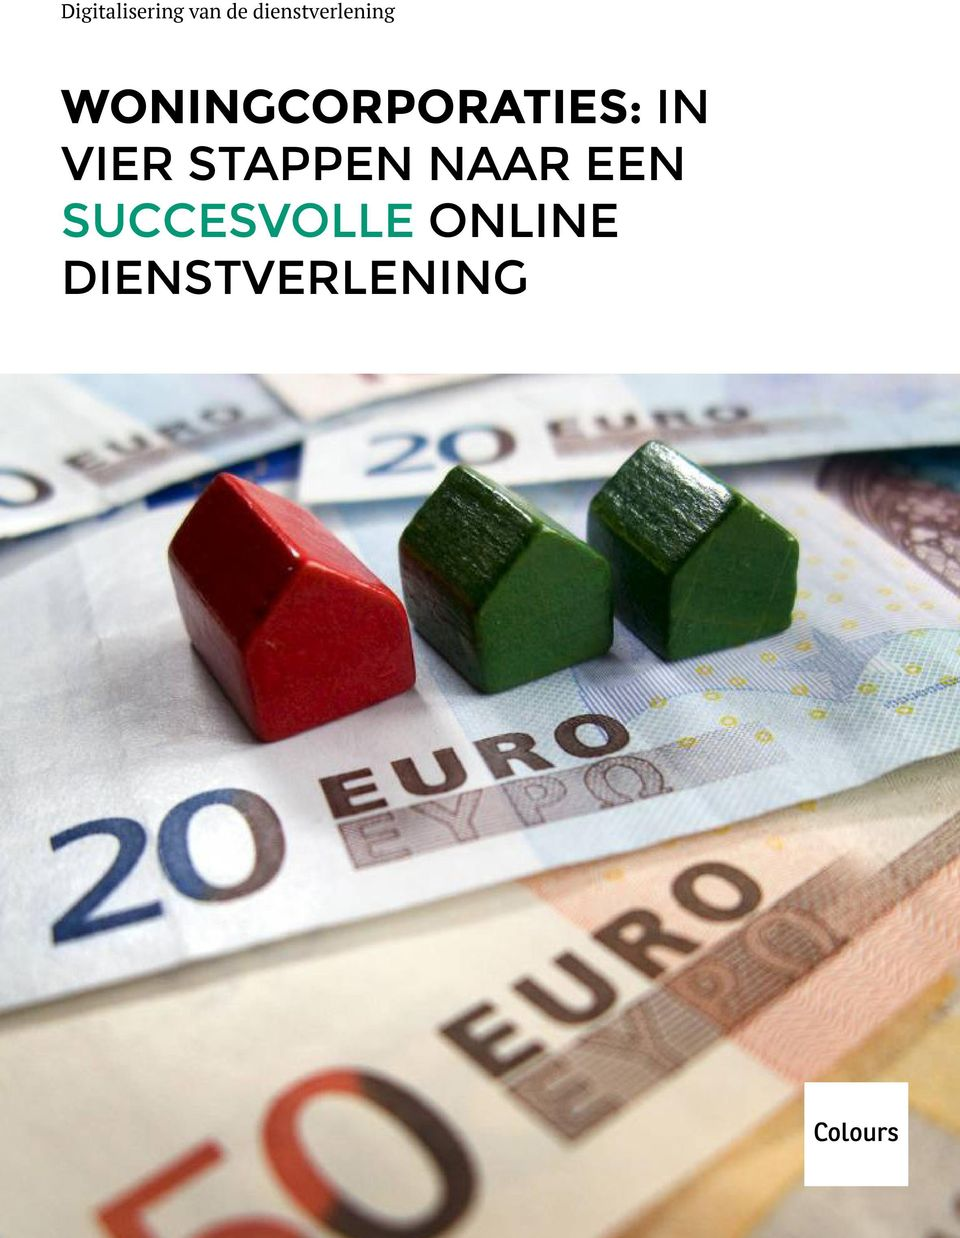 WONINGCORPORATIES: IN VIER